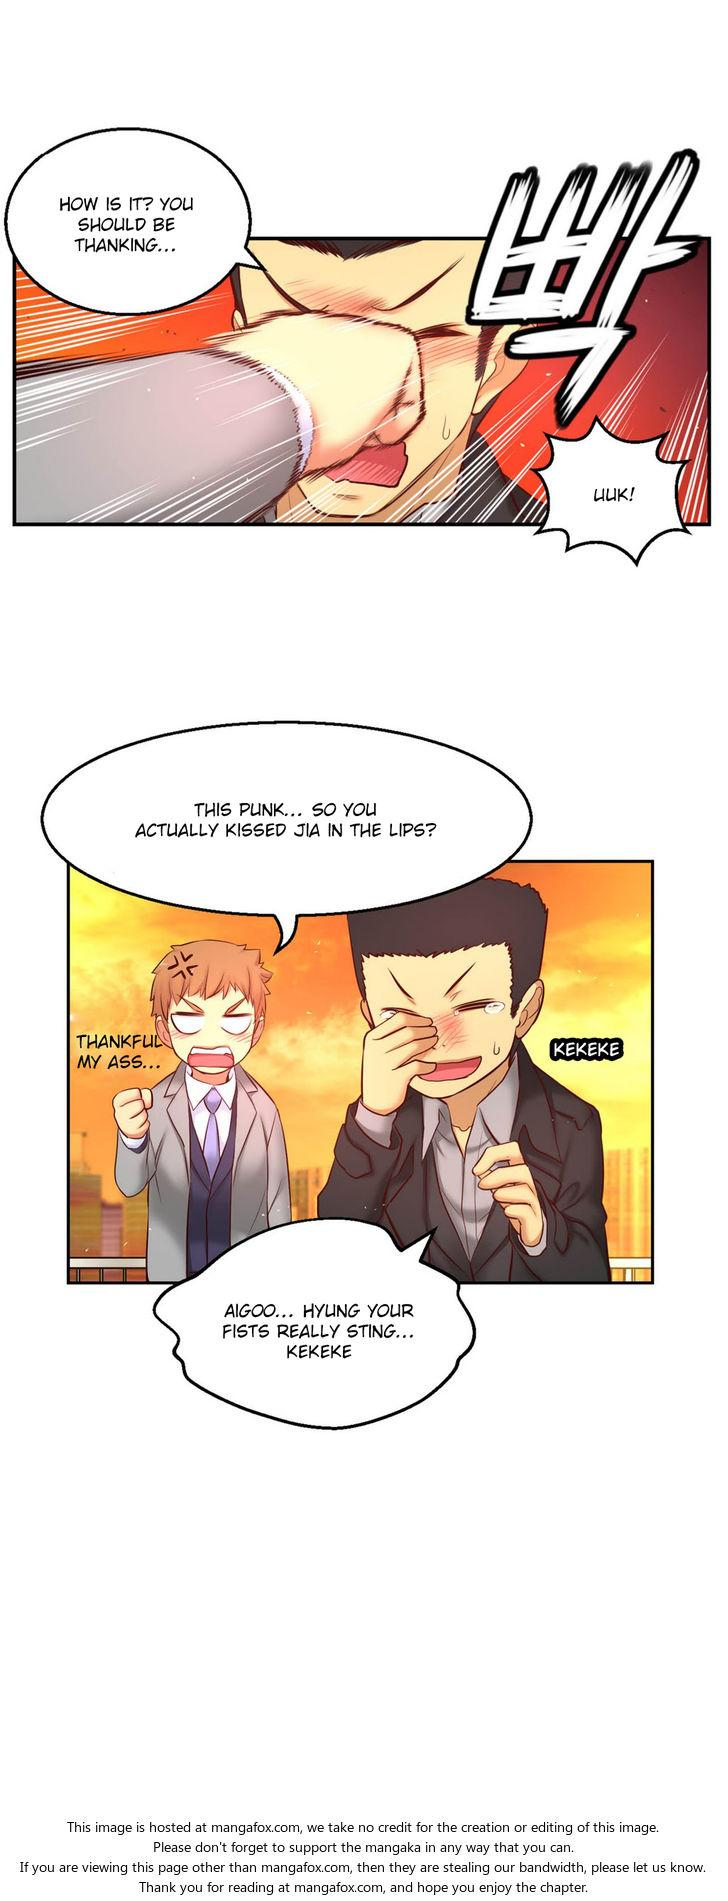 [Donggul Gom] She is Young (English) Part 1/2 1492